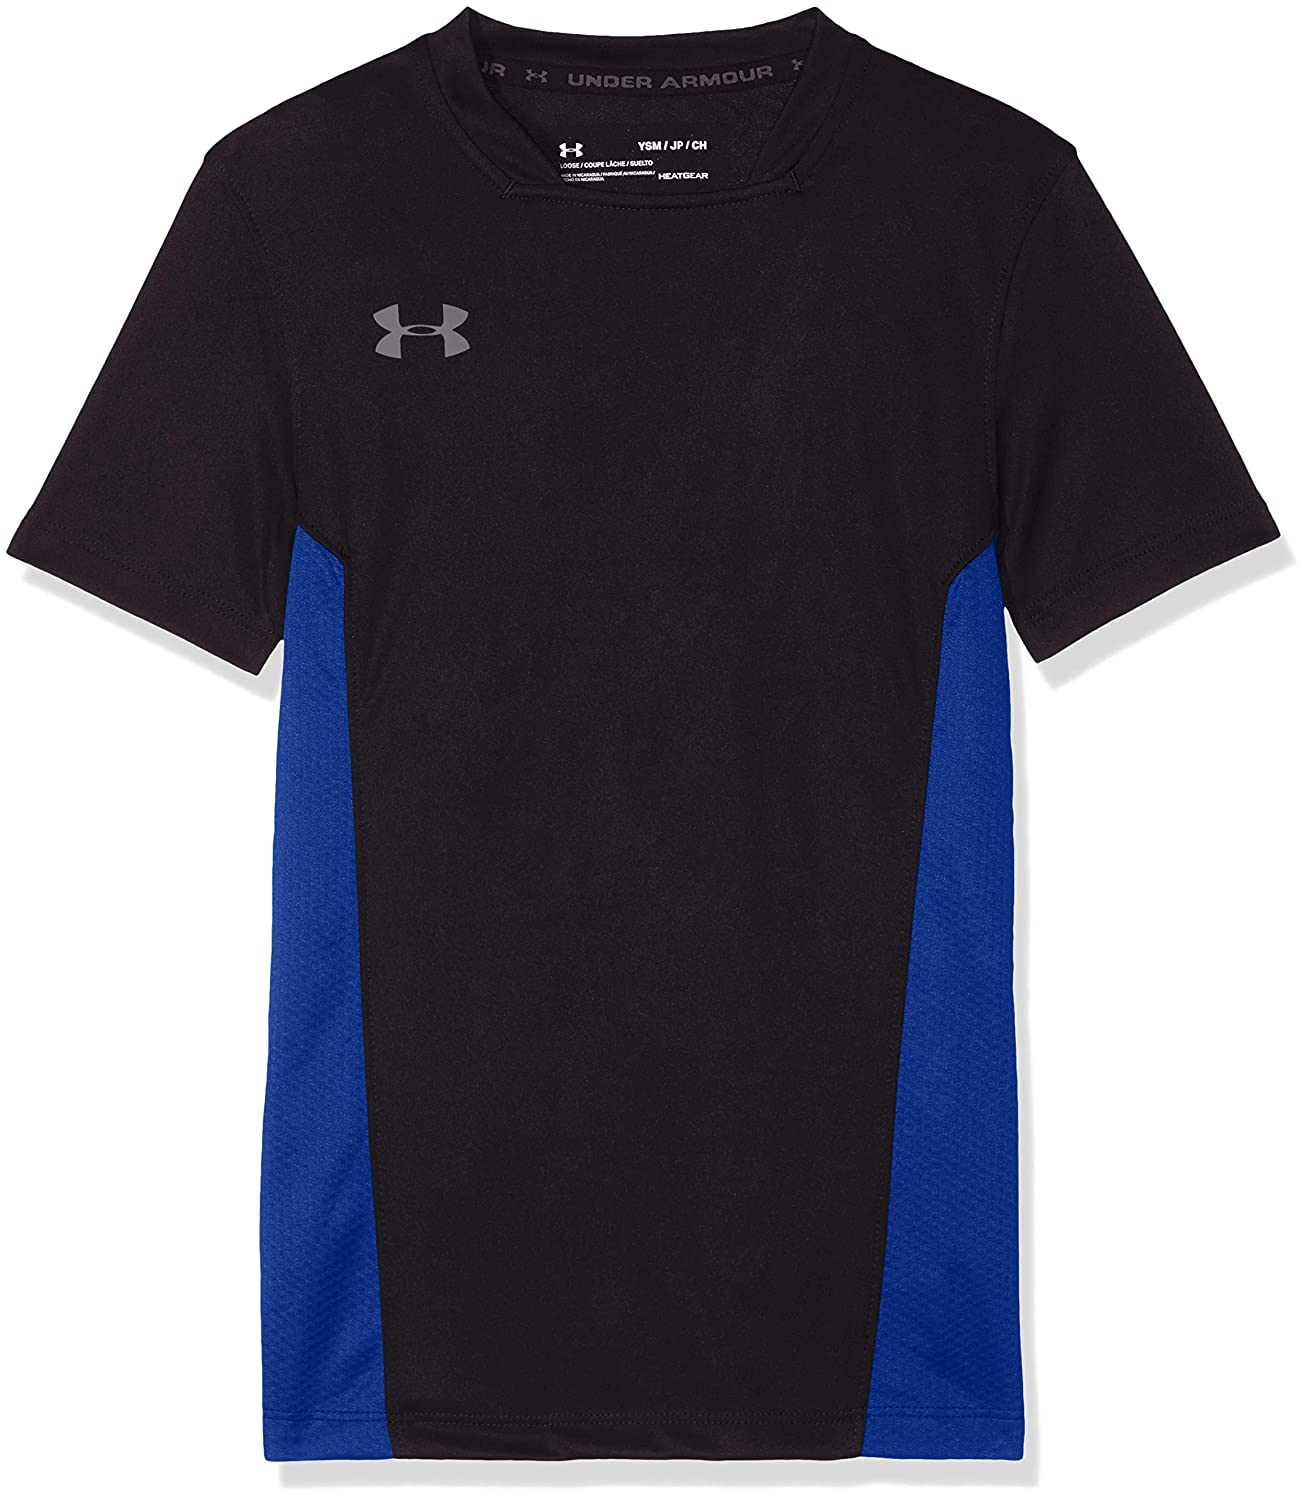 Under Armour Boys Youth Challenger II Training Shirt Under Armour Boys/' Youth Challenger II Training Shirt Under Armour Apparel 1314639